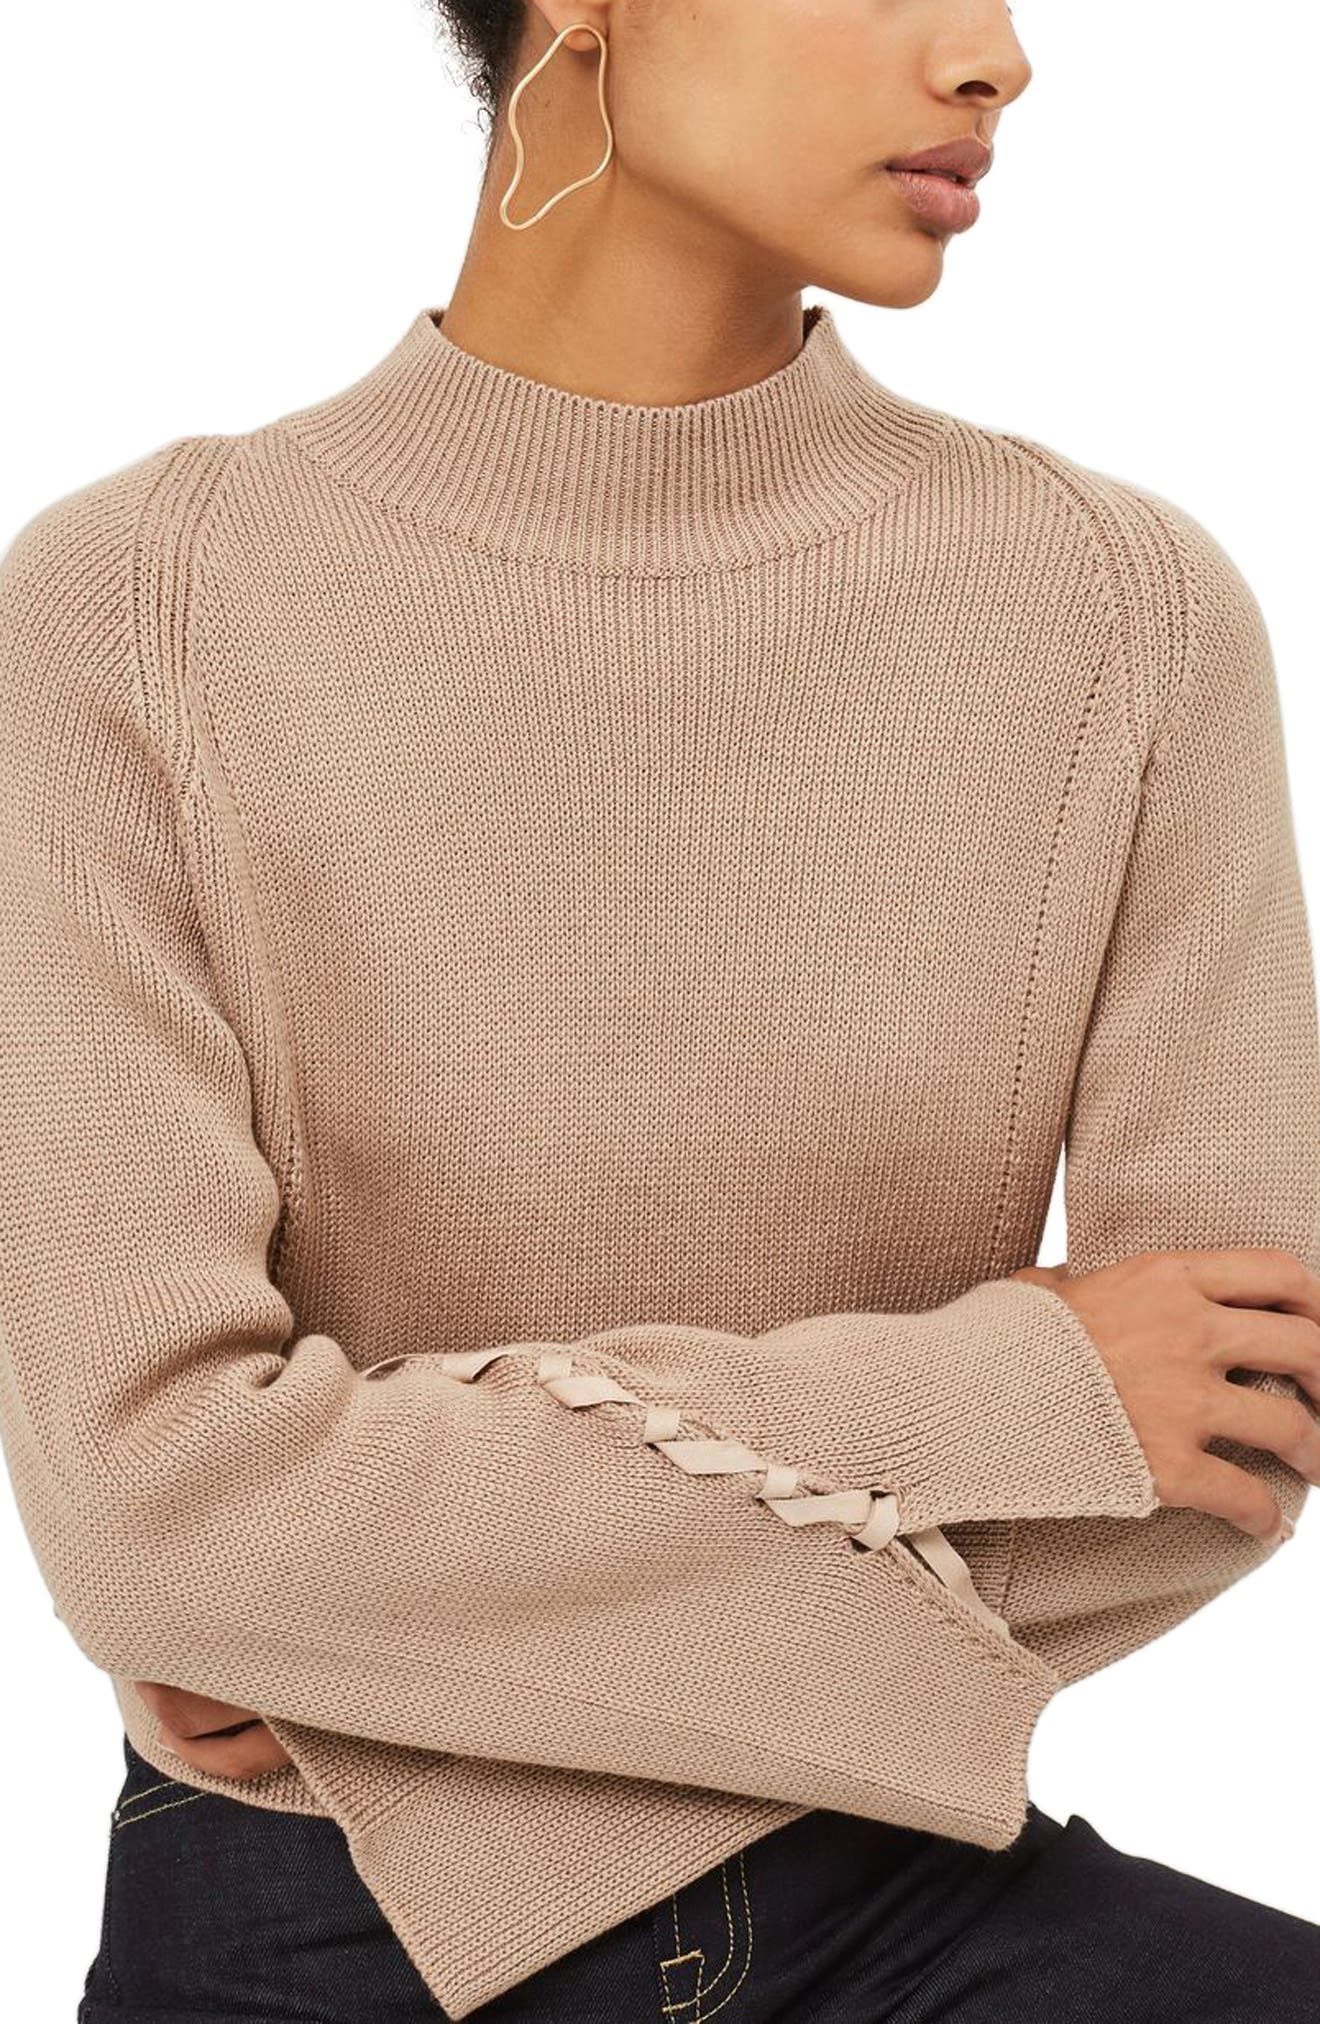 Main Image - Topshop Lace Sleeve Funnel Neck Sweater